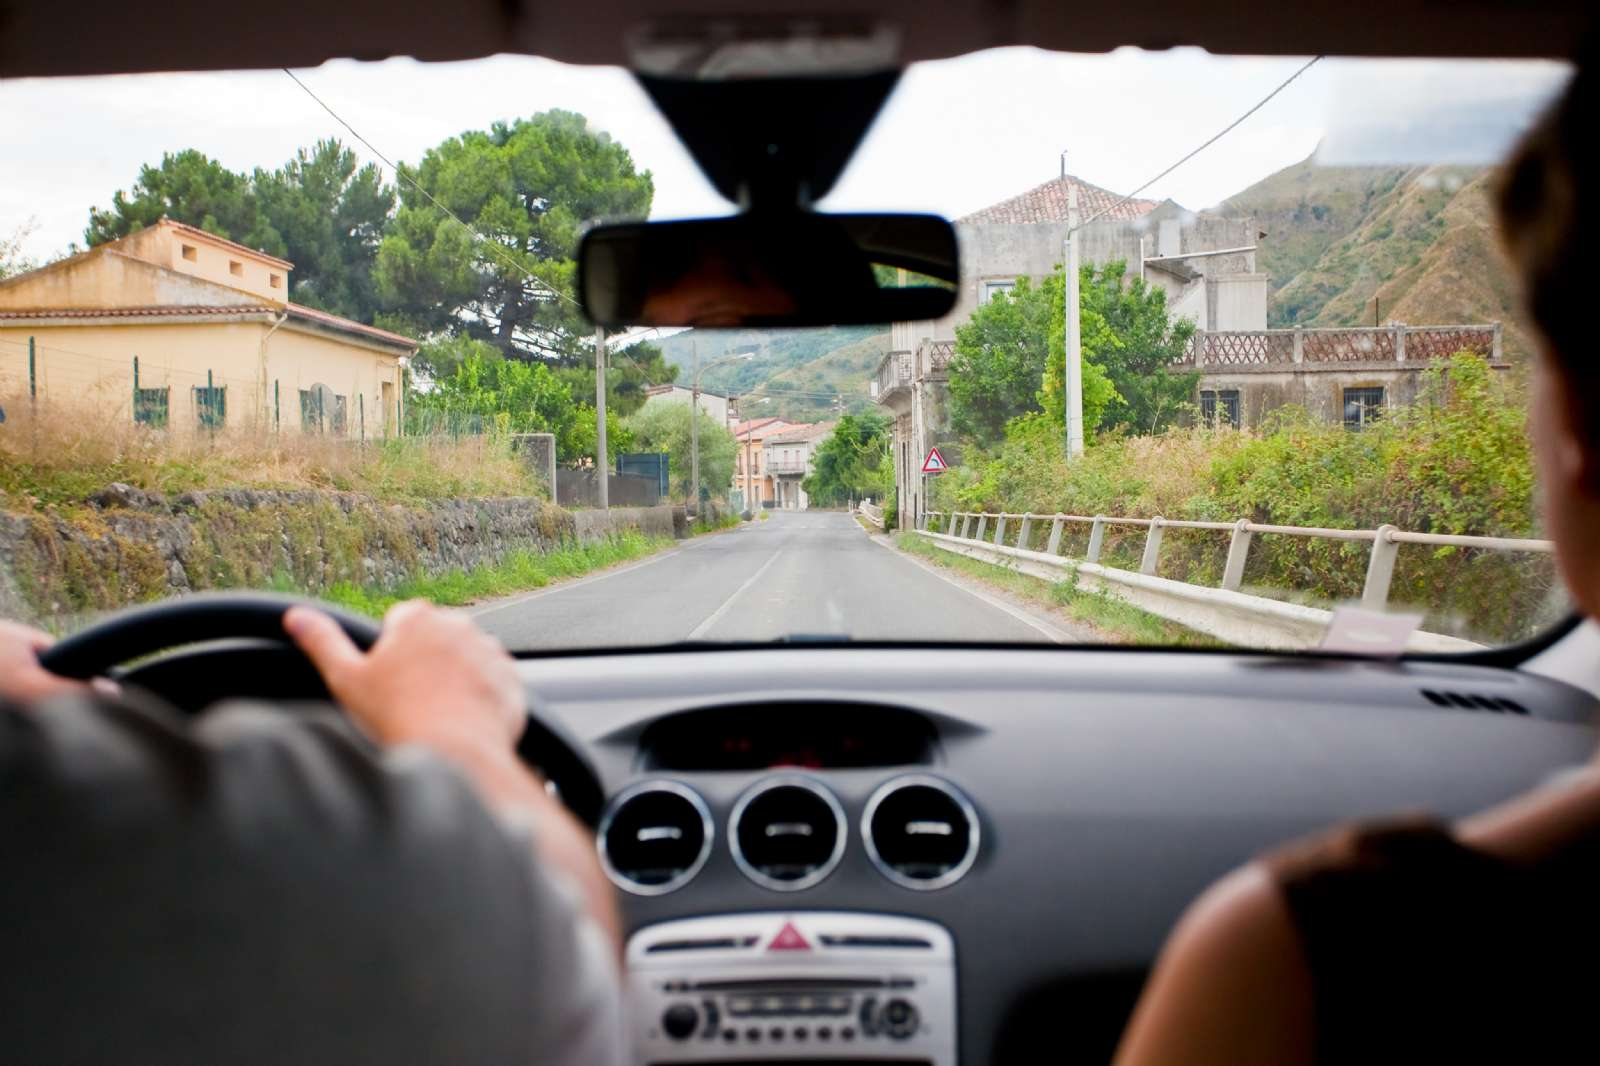 Self-drive holiday in Italy offers something for all the senses.